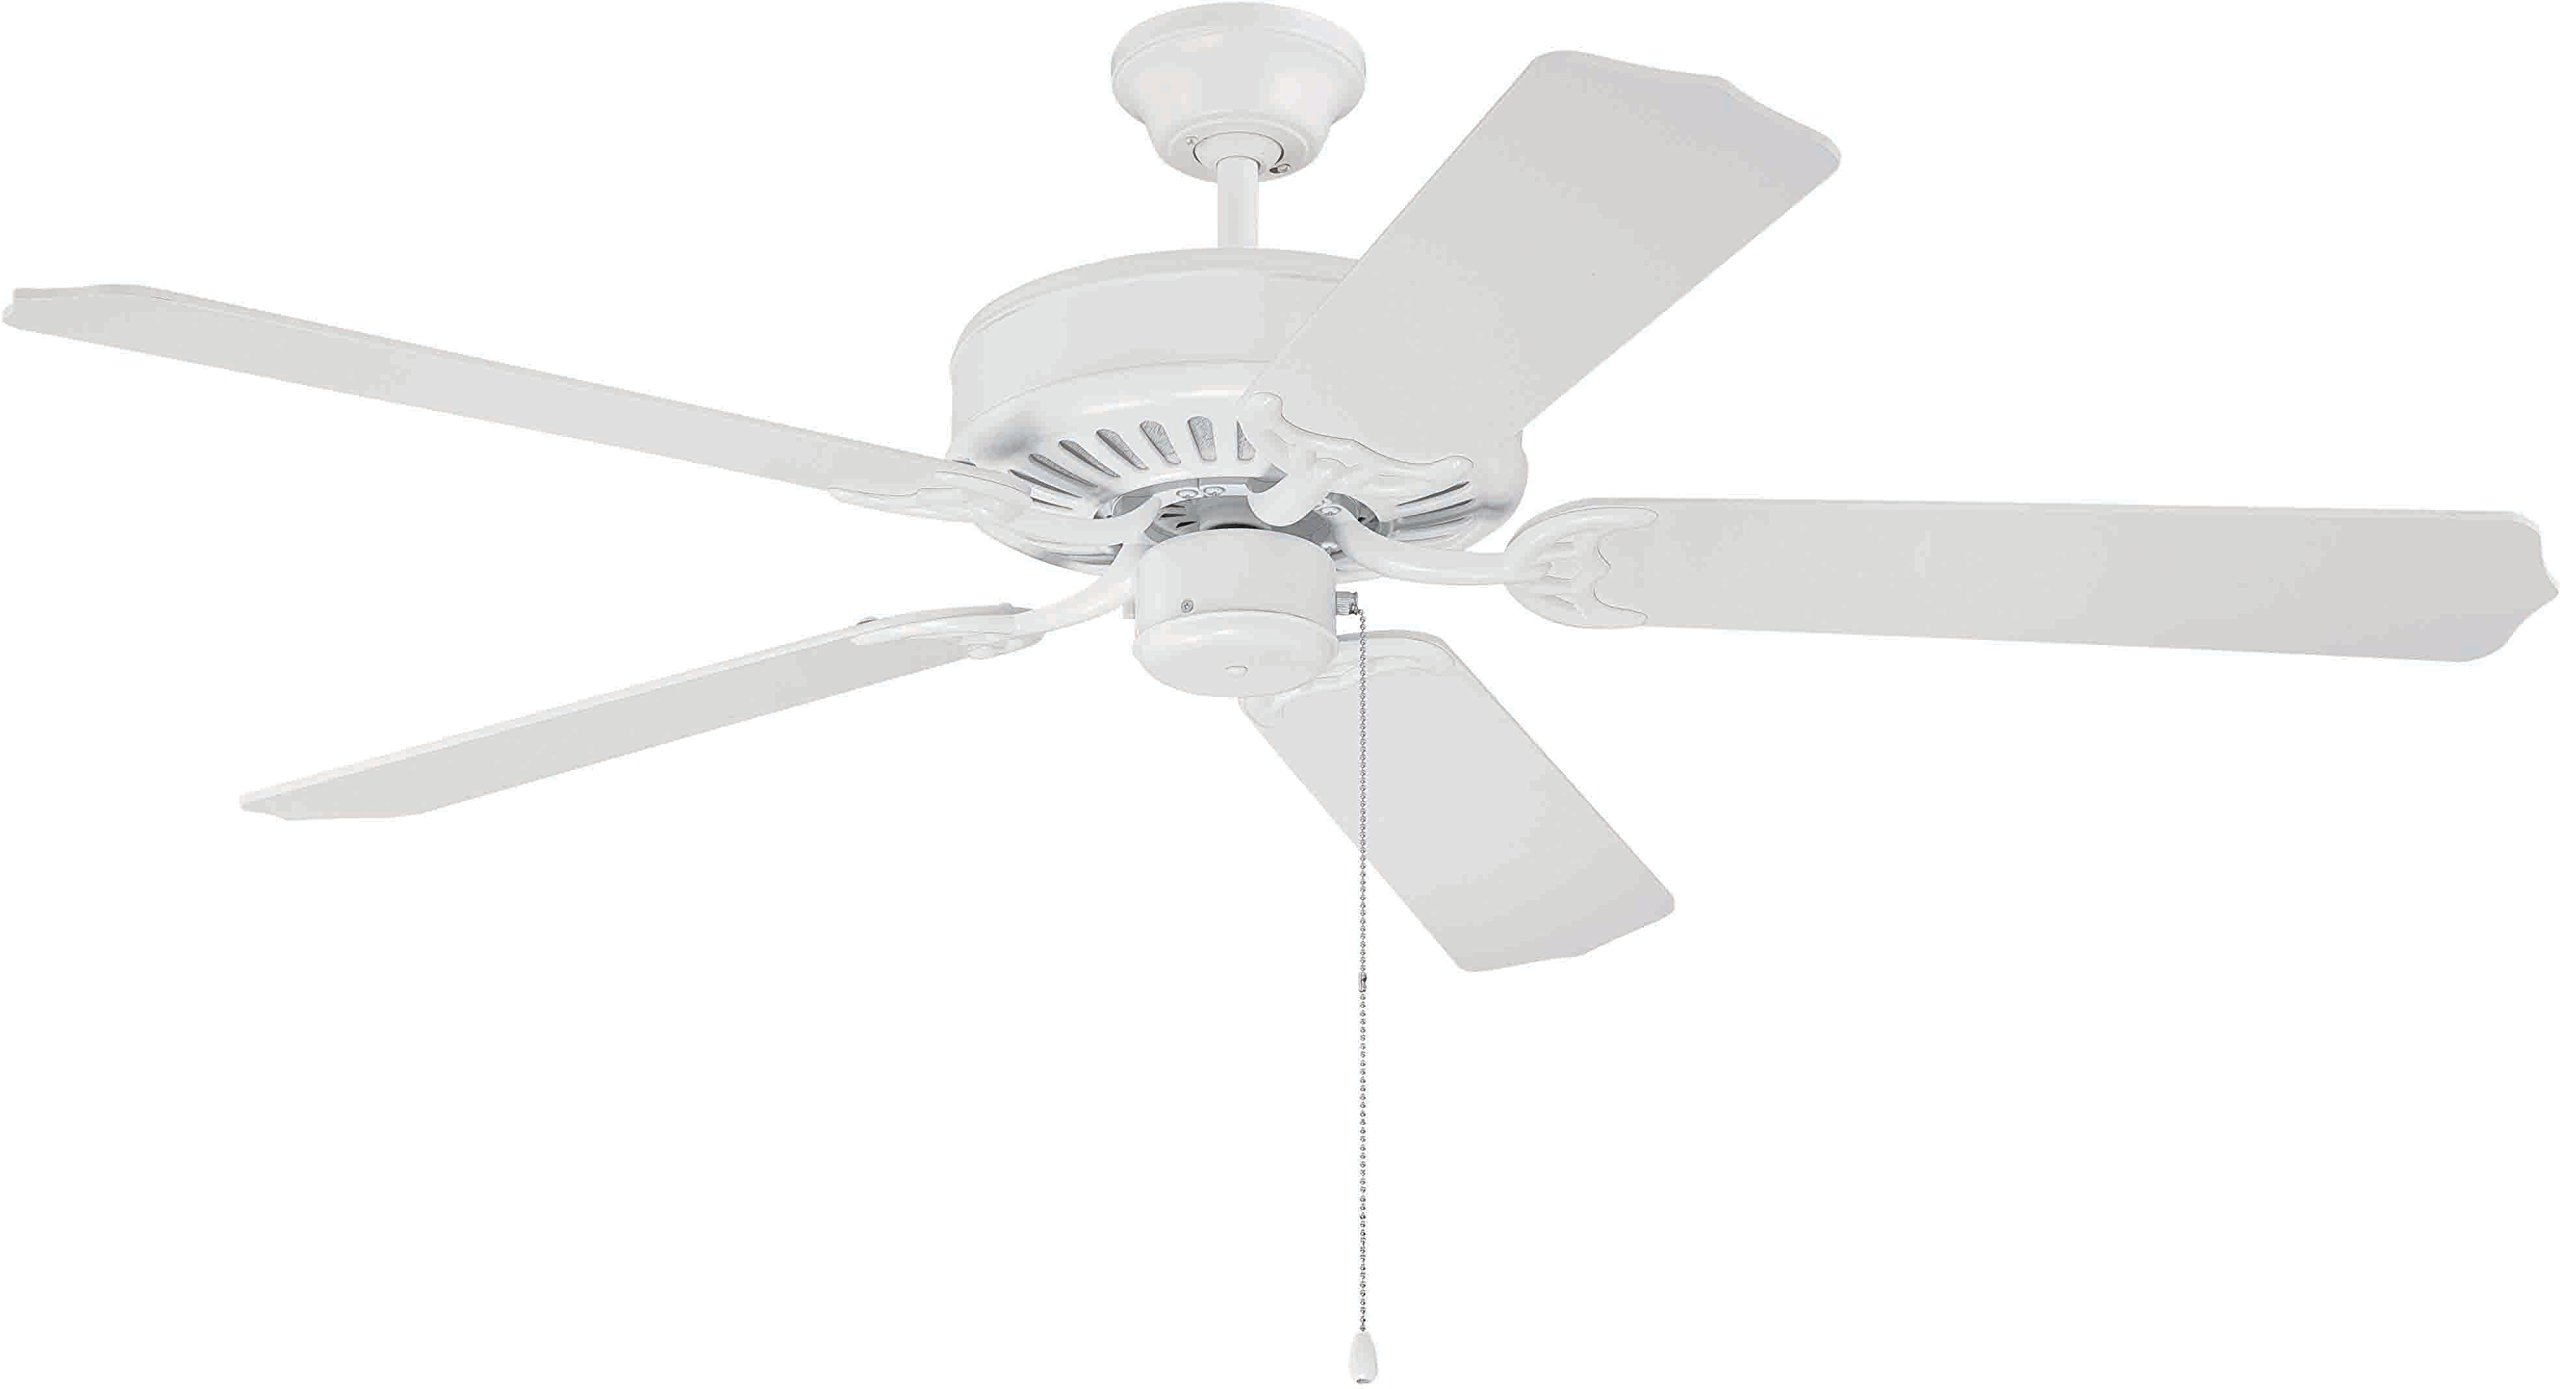 Craftmade K10621 Ceiling Fan Motor with Blades Included, 52''